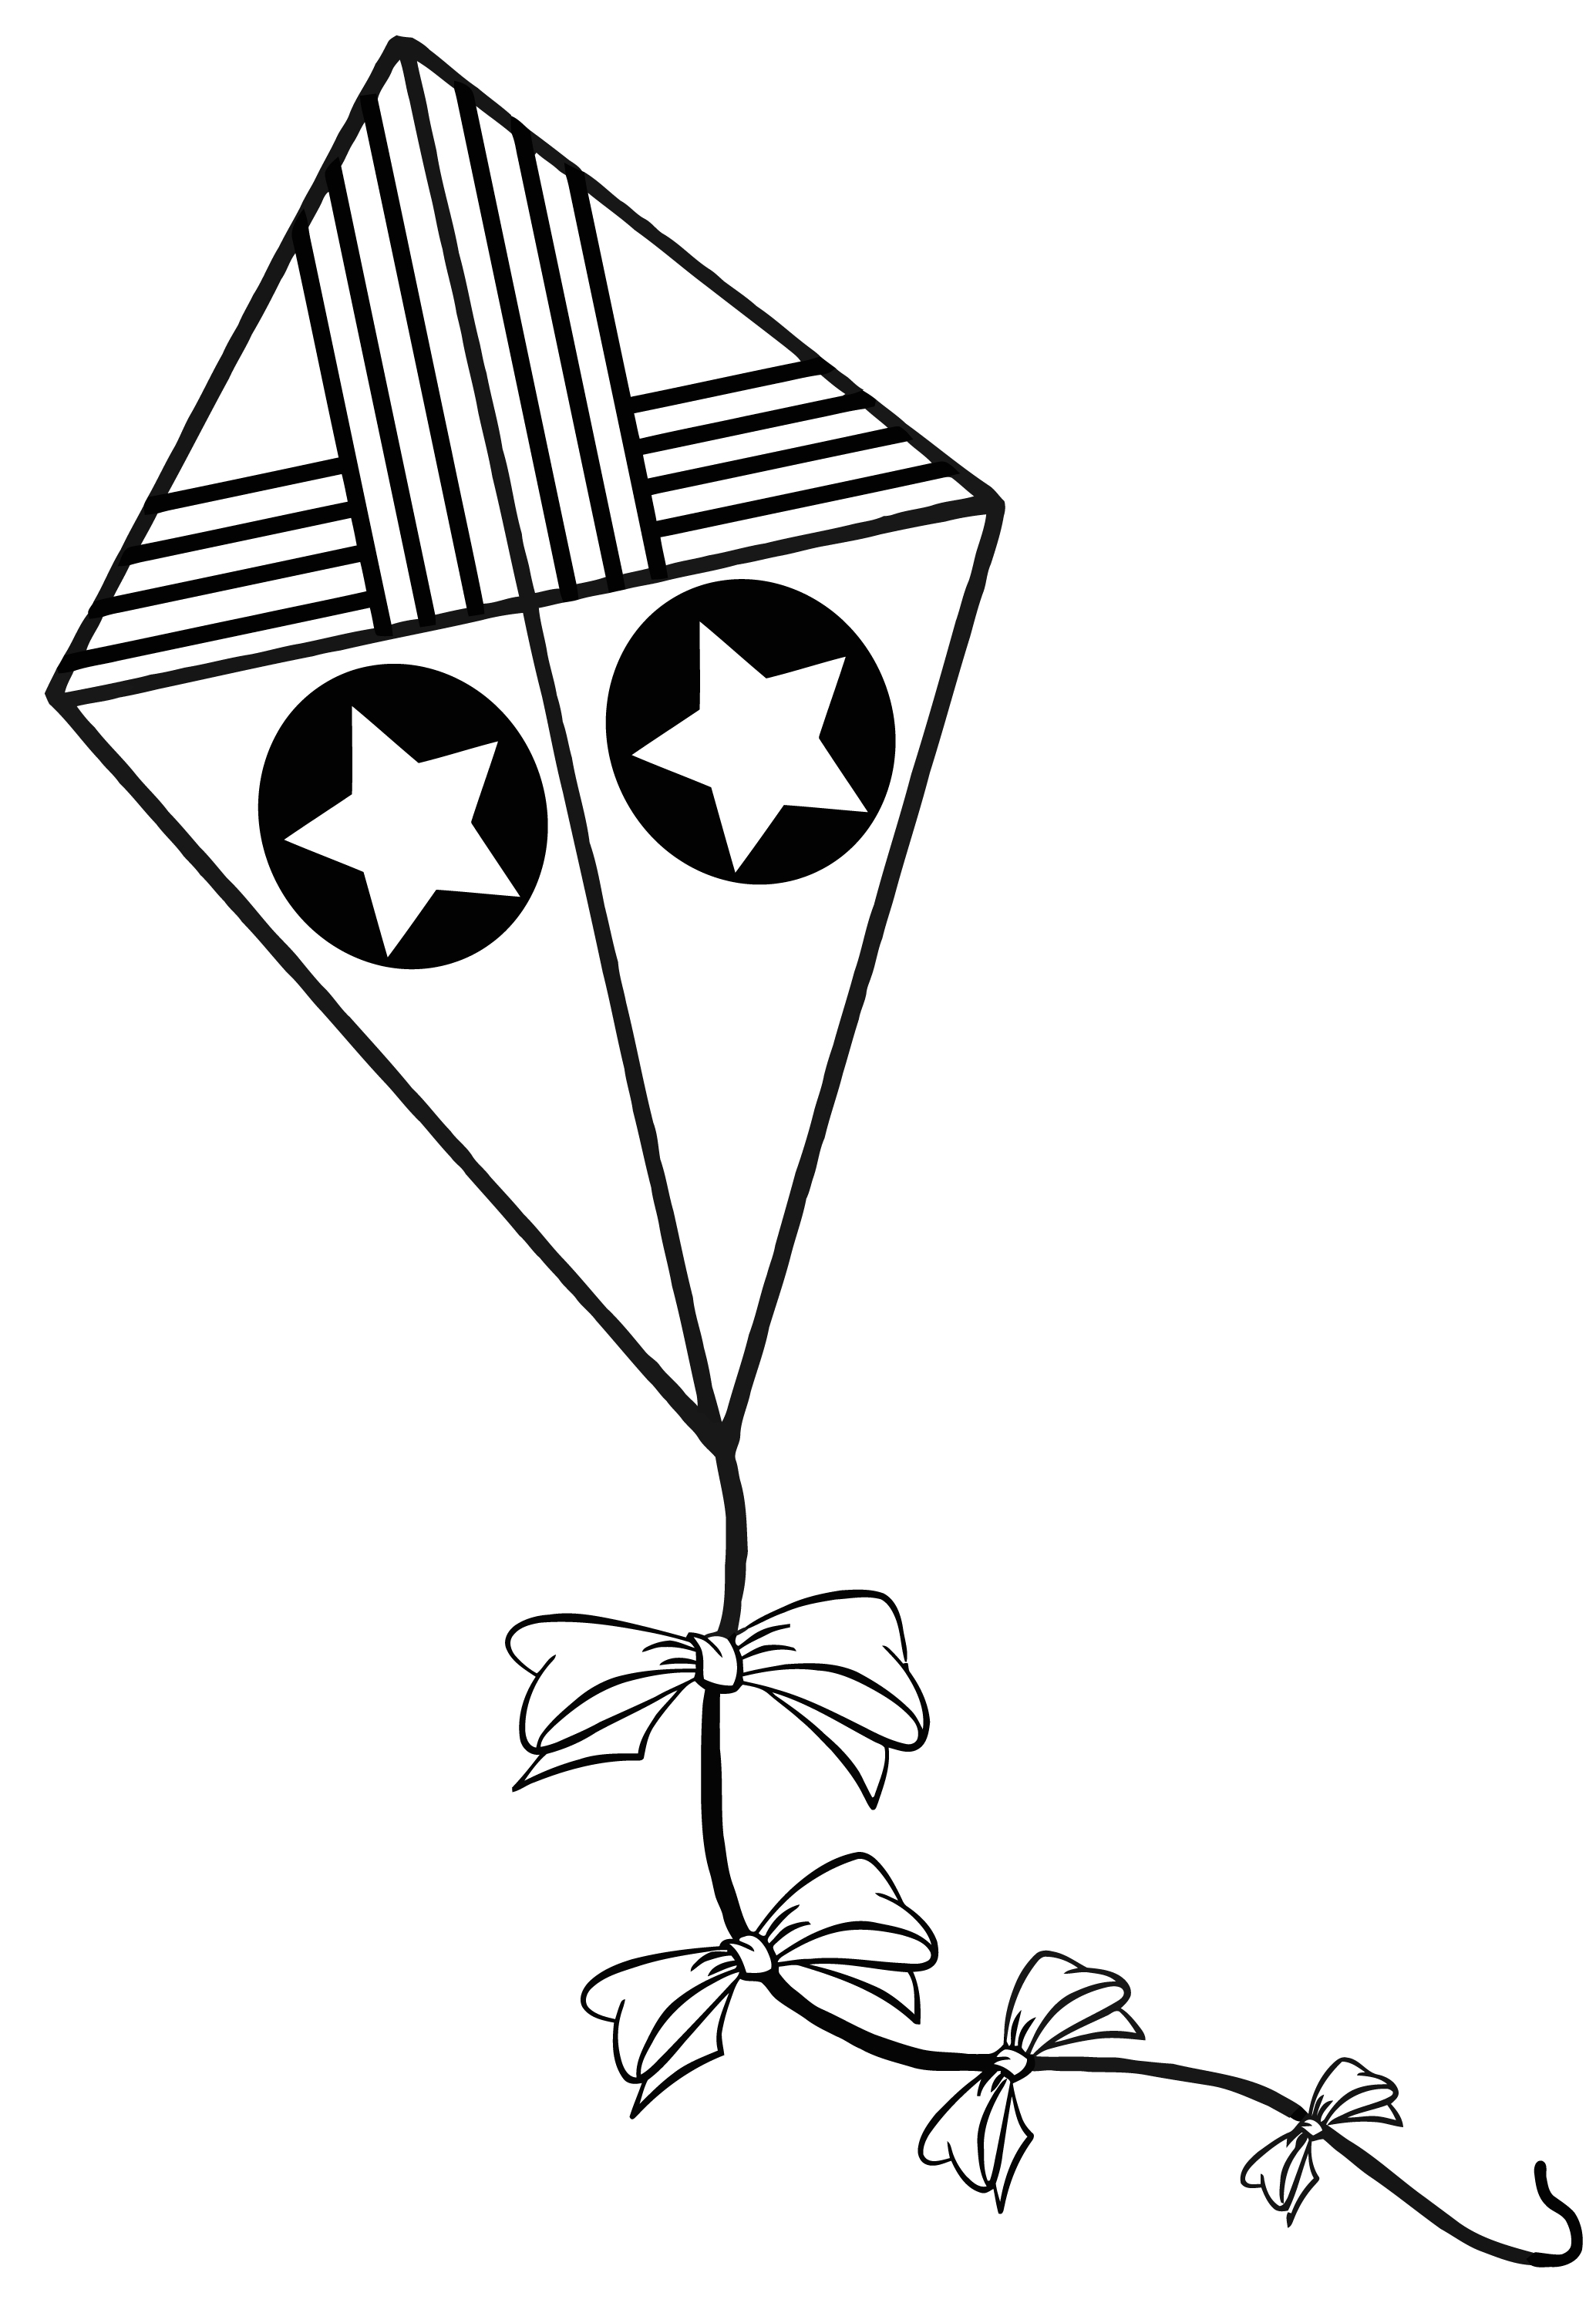 Line Drawing Kite : Kite coloring pages clipart panda free images